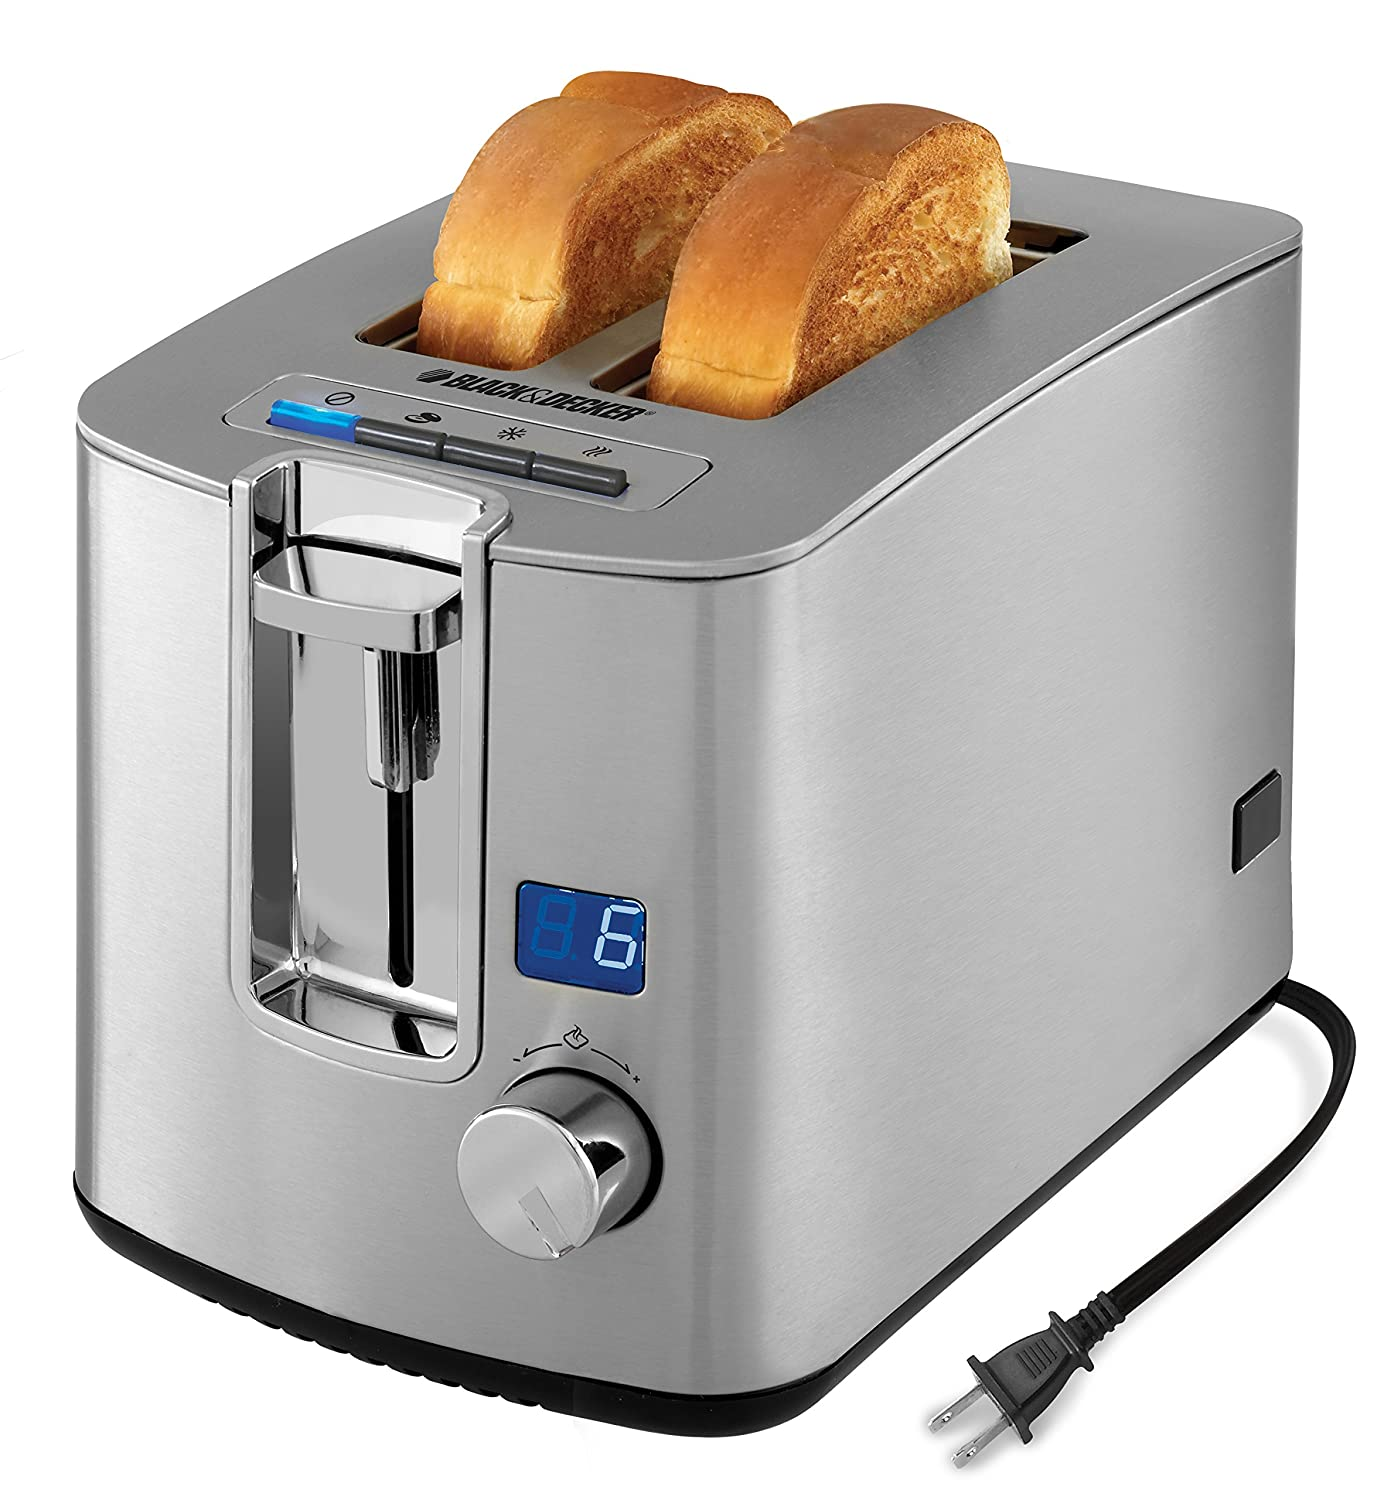 stainless auto lift toaster p industrial steel technicalissues ebay content res elite global long inflow slot s kenmore inflowcomponent slice